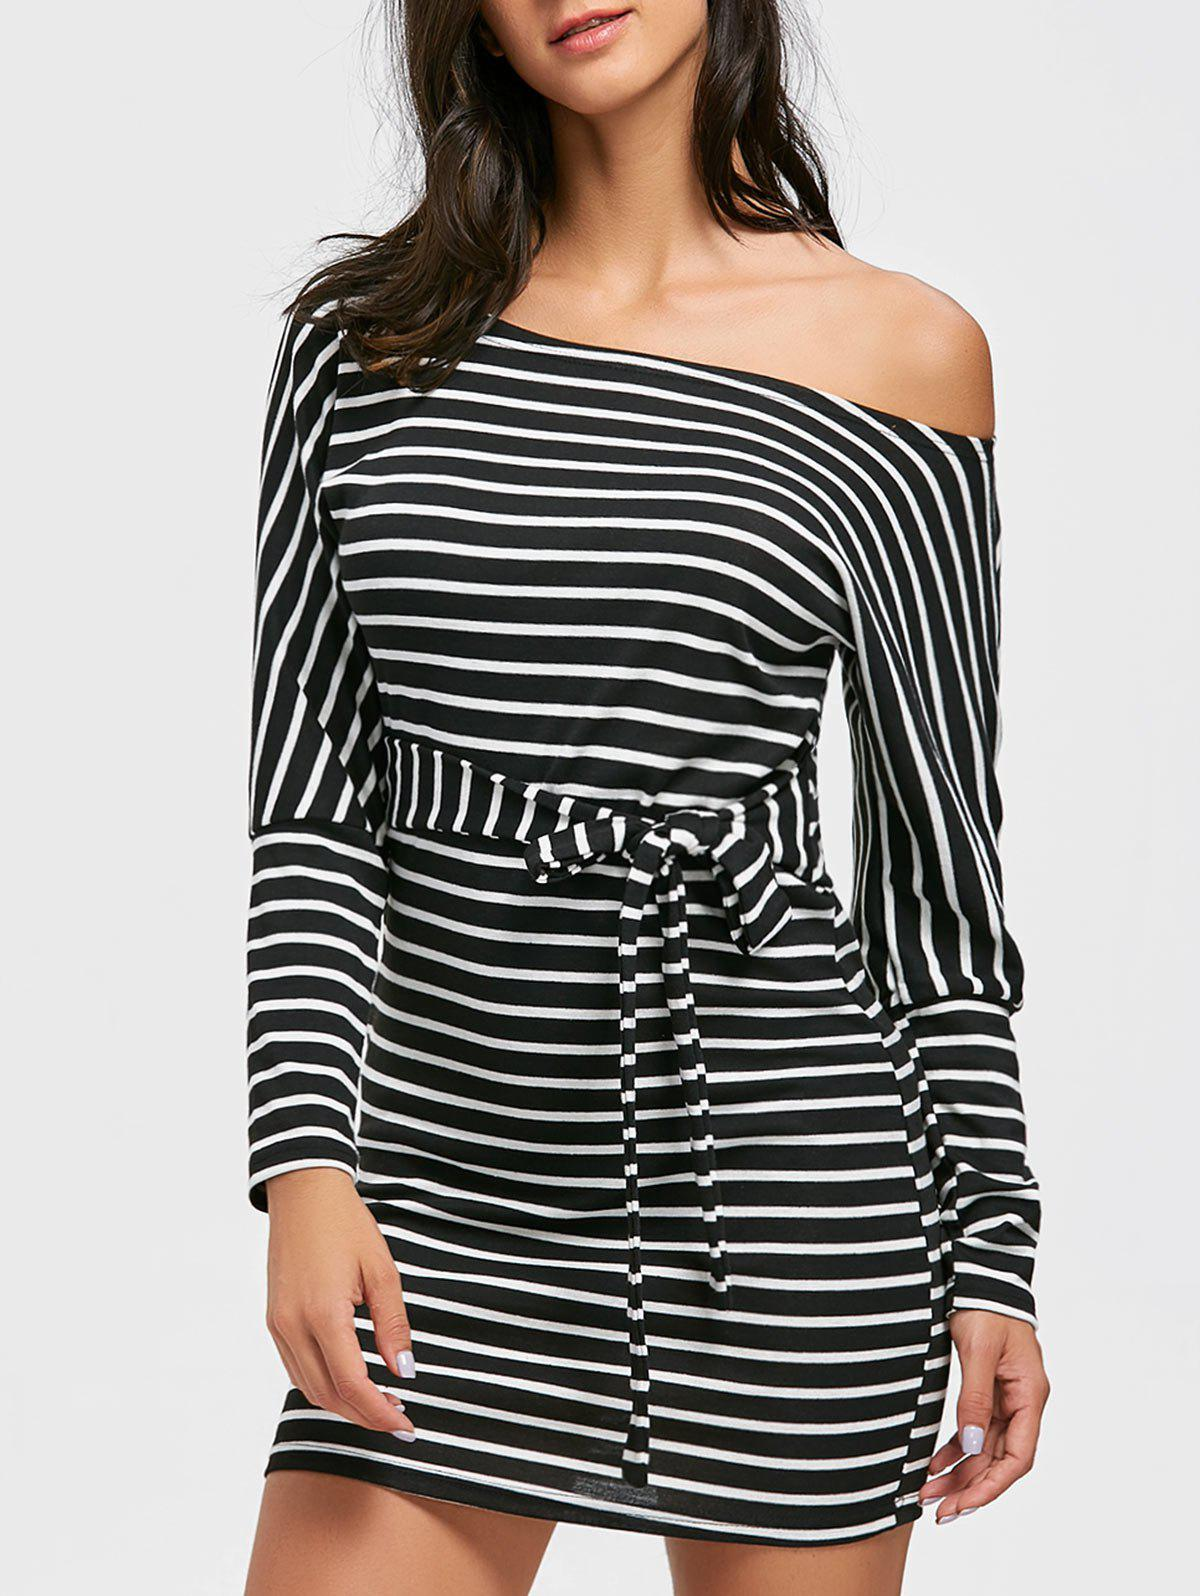 Skew Neck Striped Mini Bodycon Dress - BLACK S